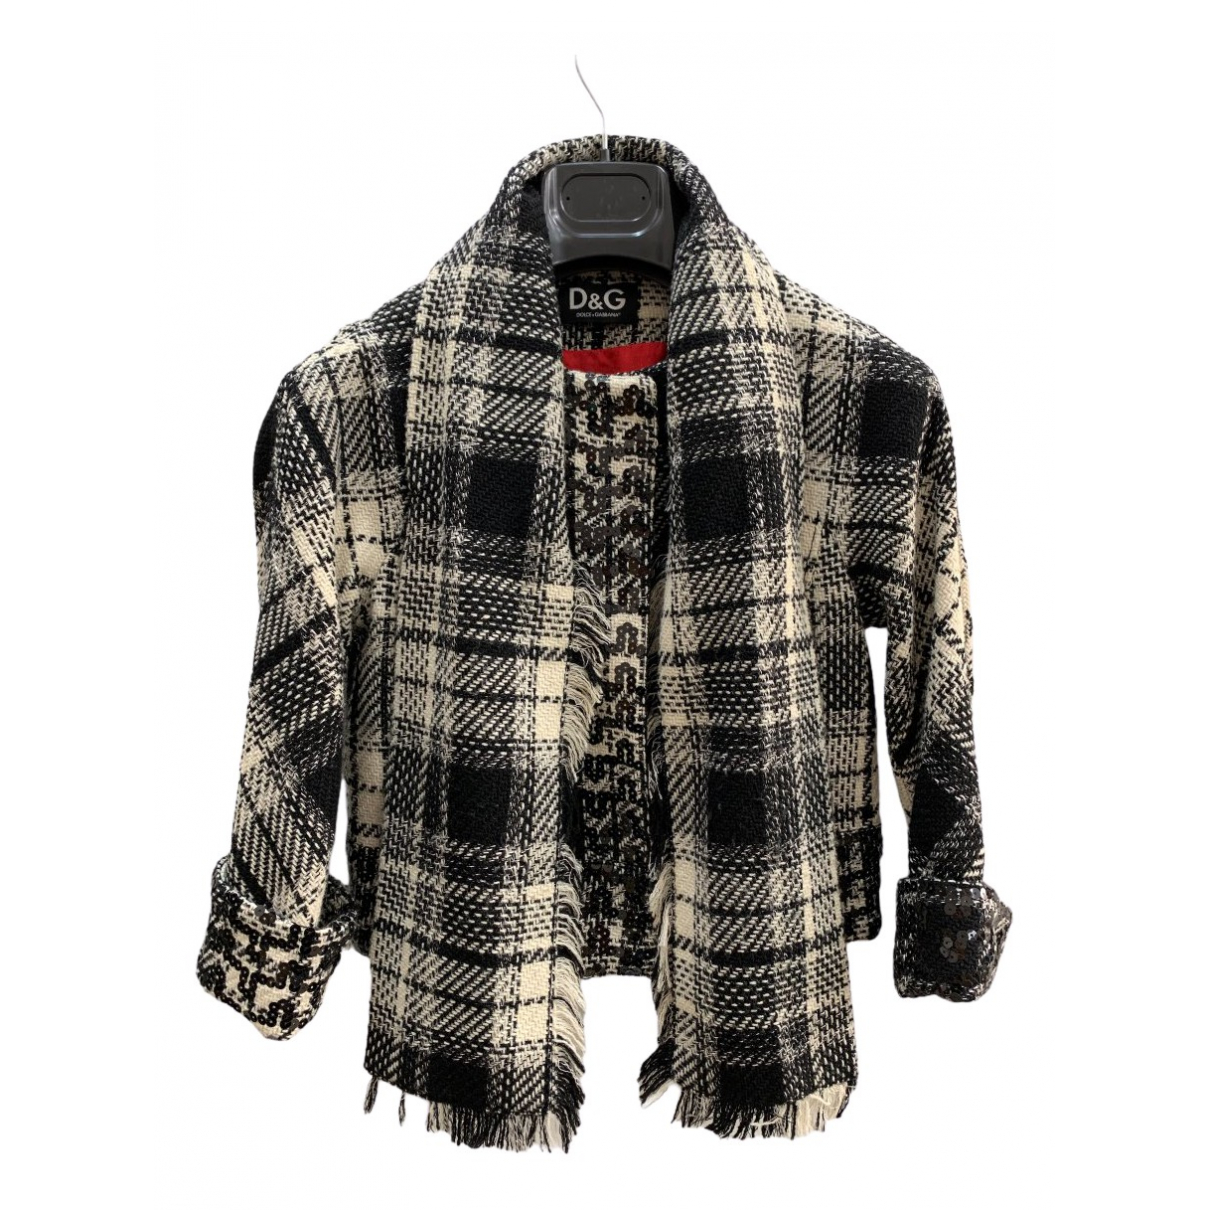 D&g \N Jacke in Polyester